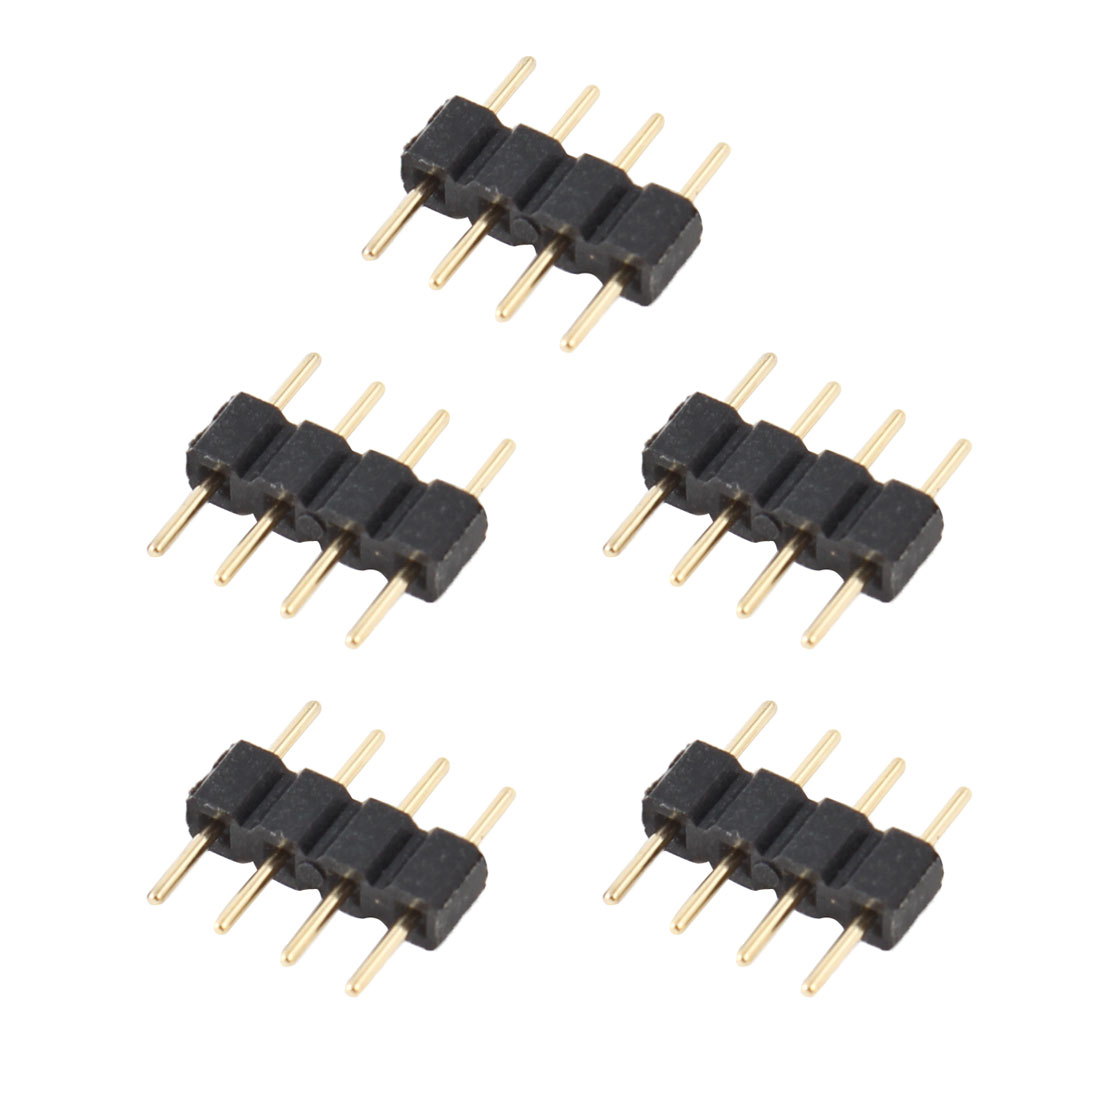 5 Pcs 4 Pin RGB Male to Male Connectors Black for LED Light Strips